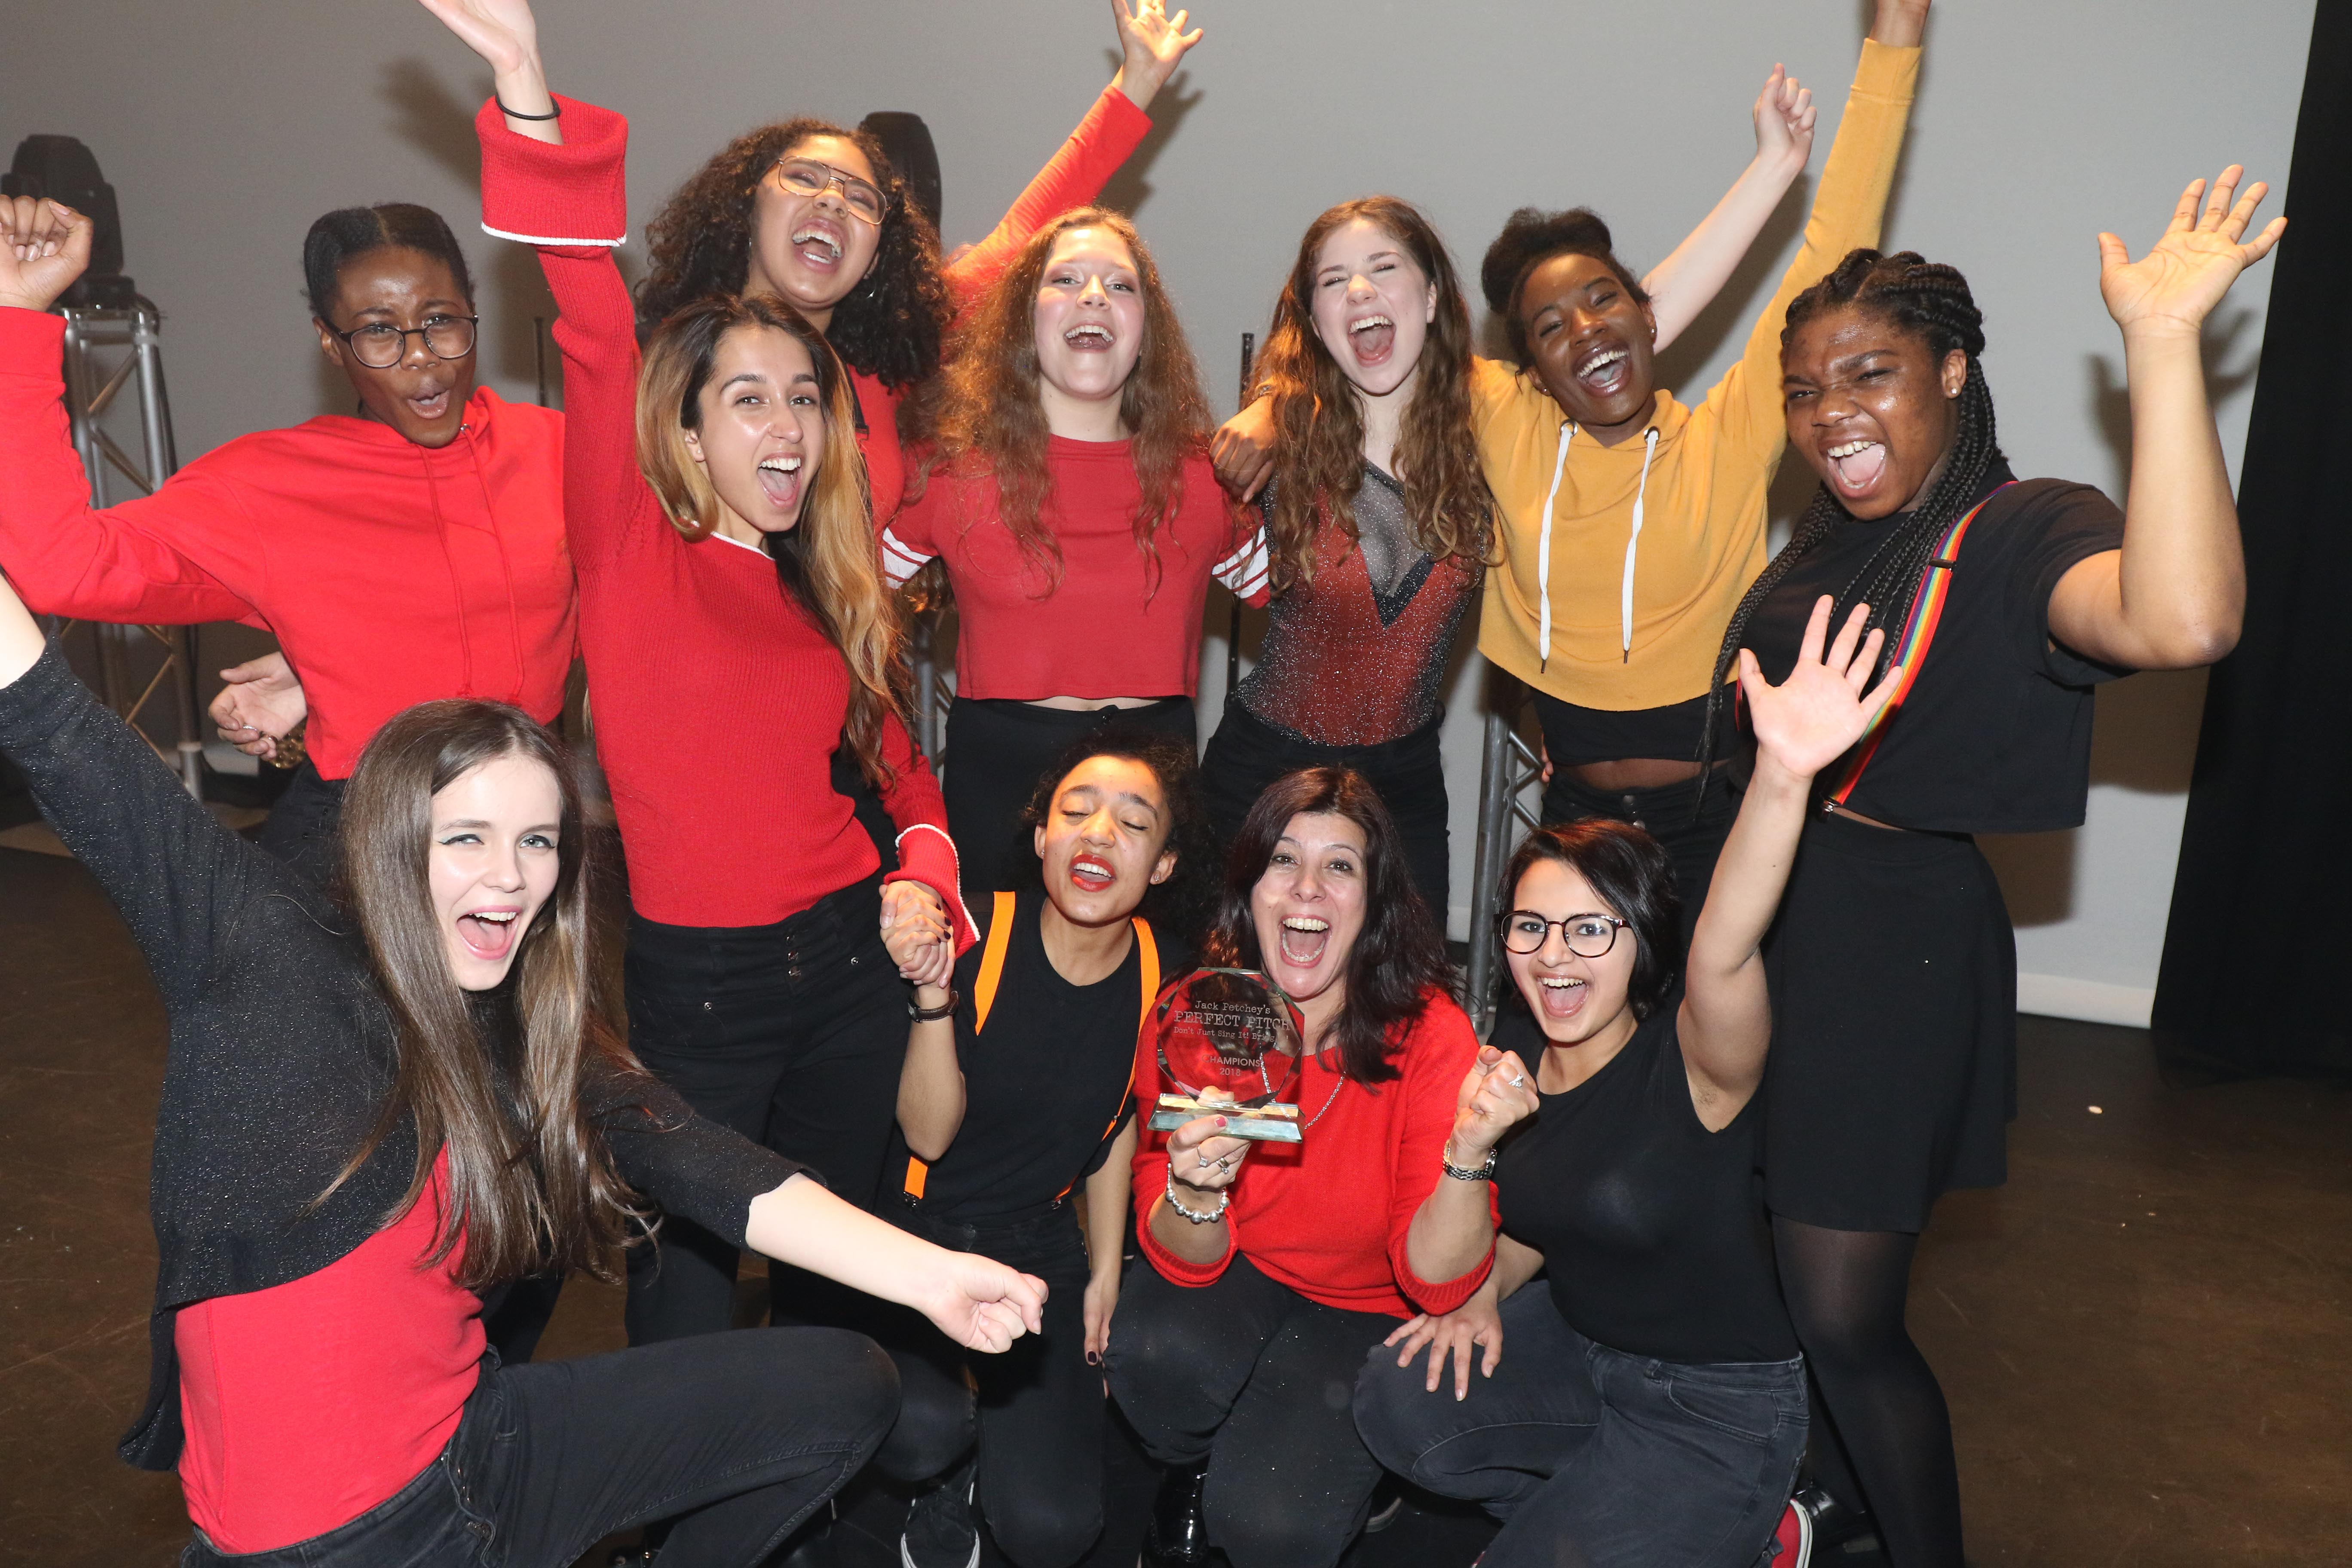 Hackney school win prize at Jack Petchey's Perfect Pitch acapella competition